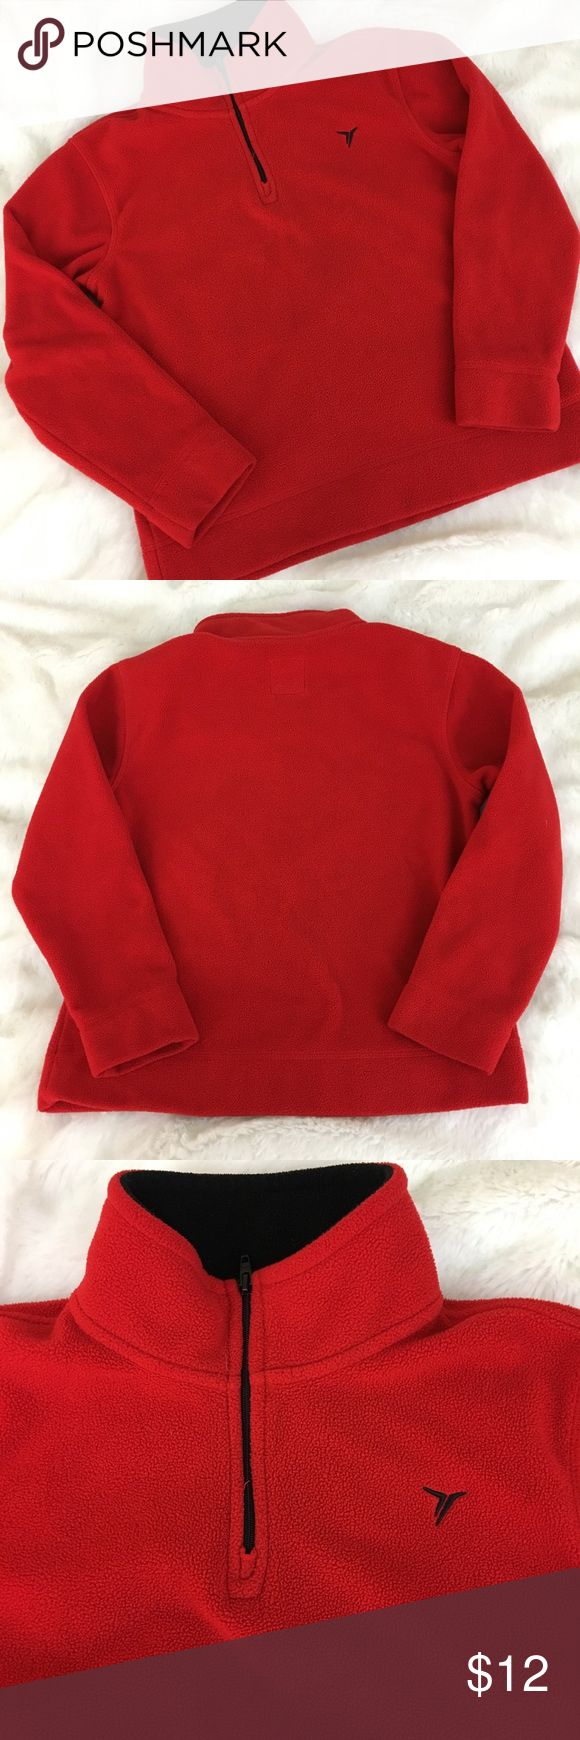 🆕Boy's Red Old Navy Fleece 1/4 Zip Pullover Boy's Old Navy Red 1/4 Zip Fleece Pullover. Super warm and cozy. In excellent preloved condition. Size S(6-7). 100% polyester. ❌NO TRADES ❌NO LOWBALLING ❌NO MODELING ❌ Old Navy Shirts & Tops Sweatshirts & Hoodies